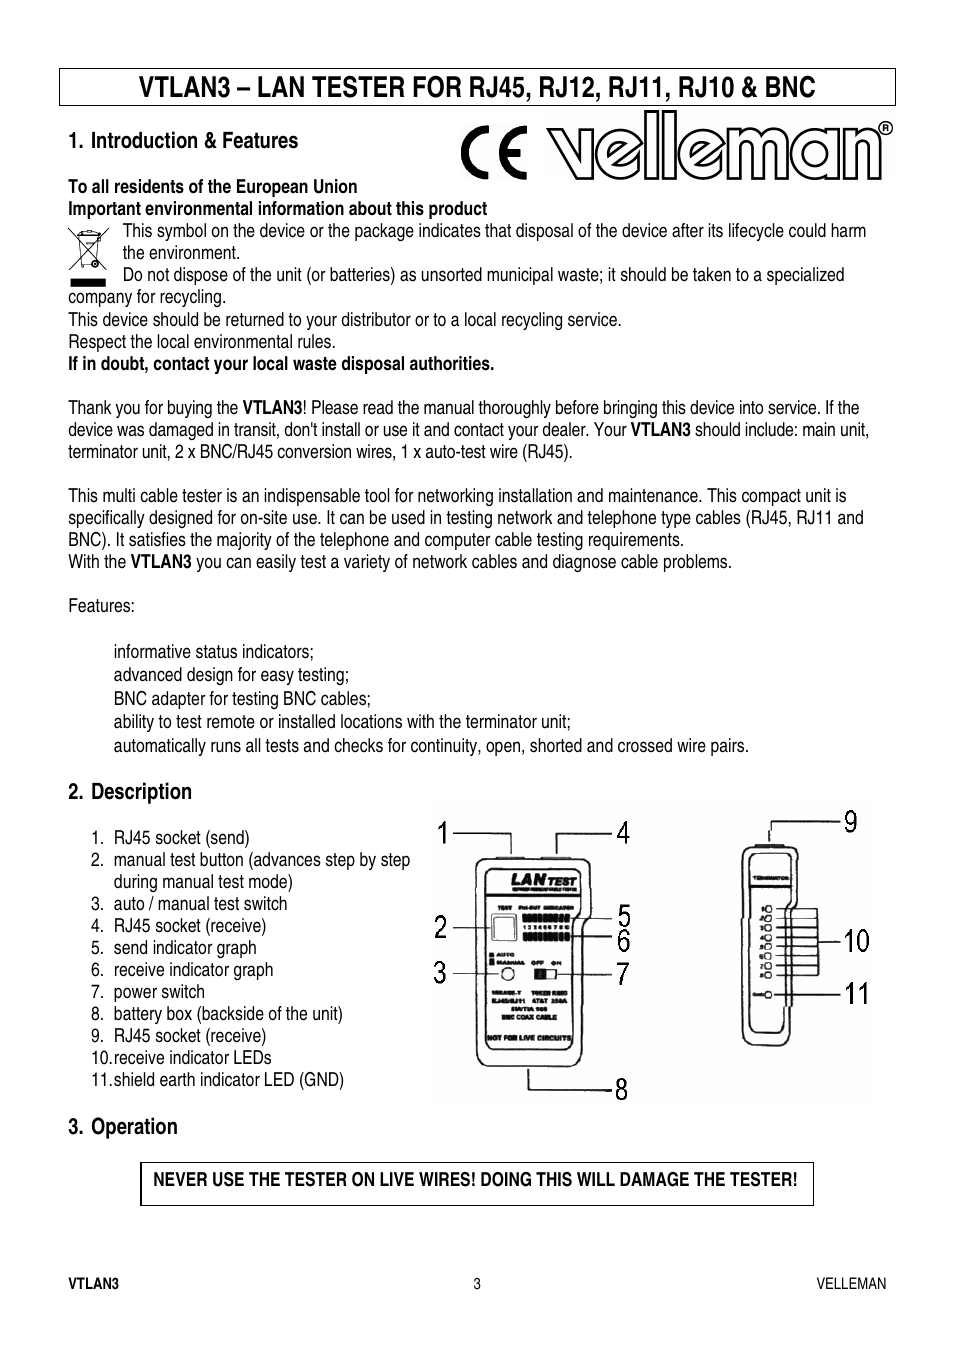 Velleman Vtlan3 User Manual Page 3 12 Leds To A Live Circuit This Will Damage The Led Immediately And